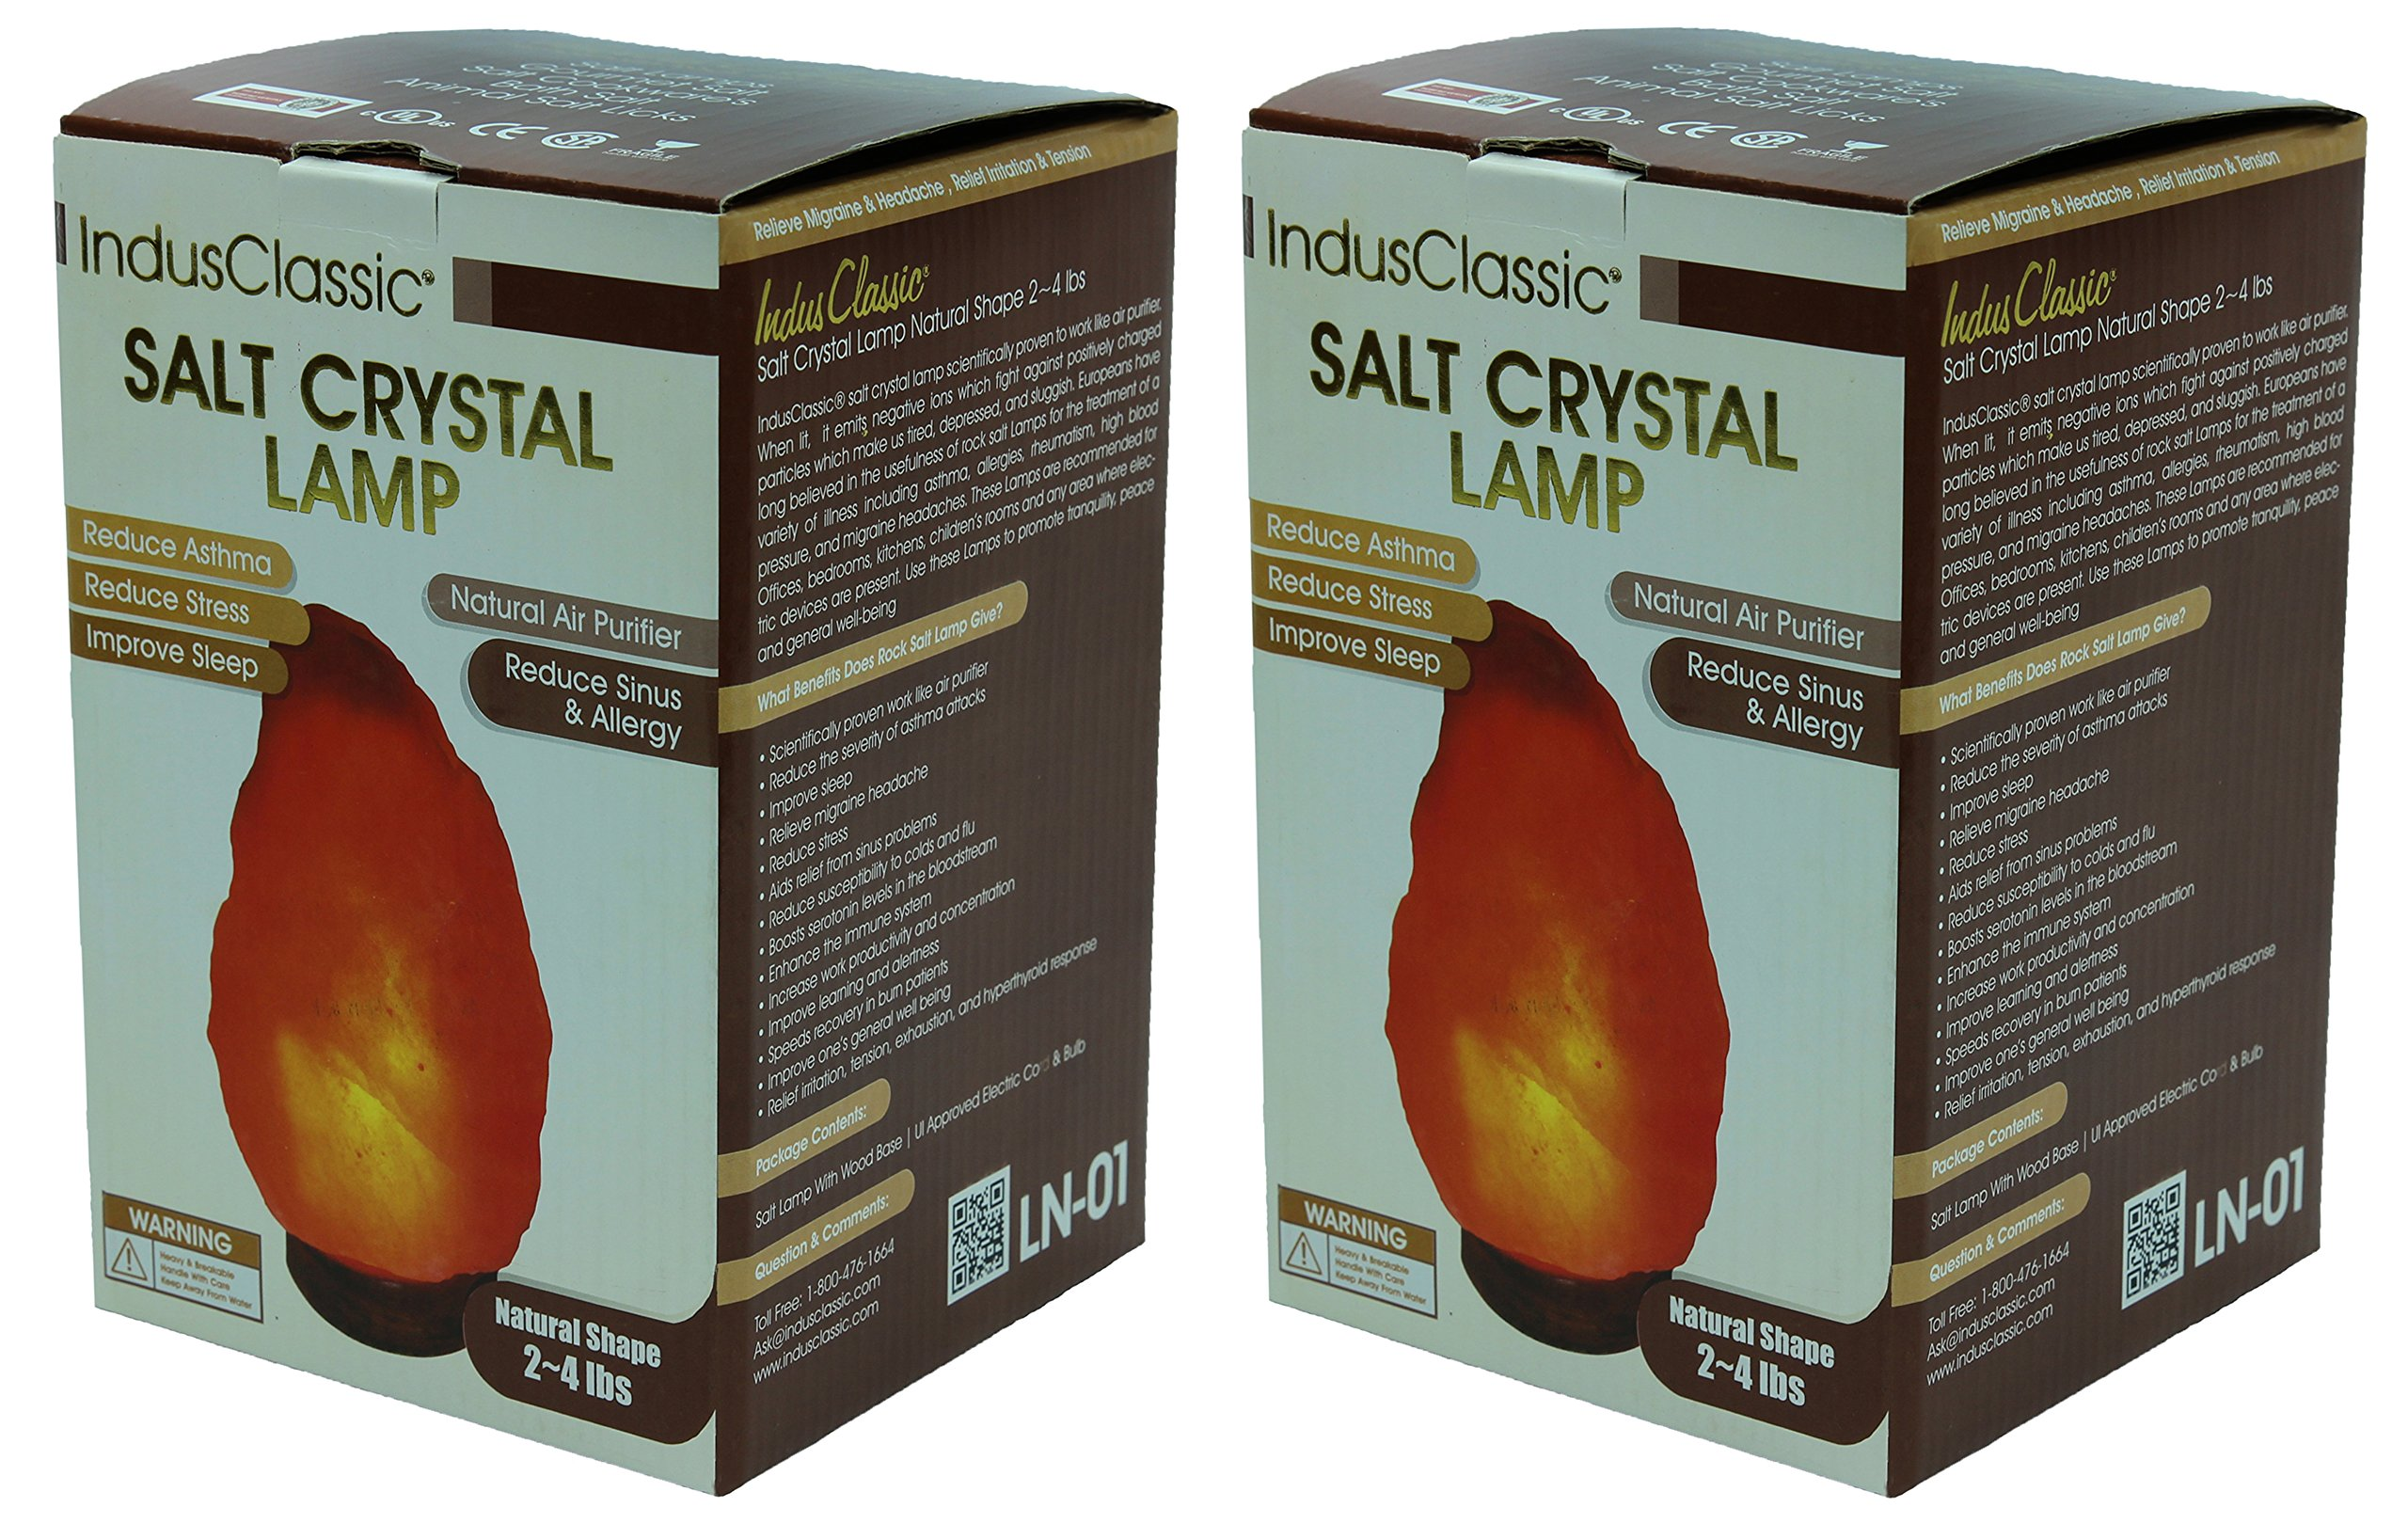 Indusclassic LN-1 Pack Of 2 Natural Himalayan Crystal Rock Salt Lamp Ionizer Air Purifier 2~4 lbs / UL Listed Cord and Dimmer Control Switch, Exceptional Quality Packaging by IndusClassic